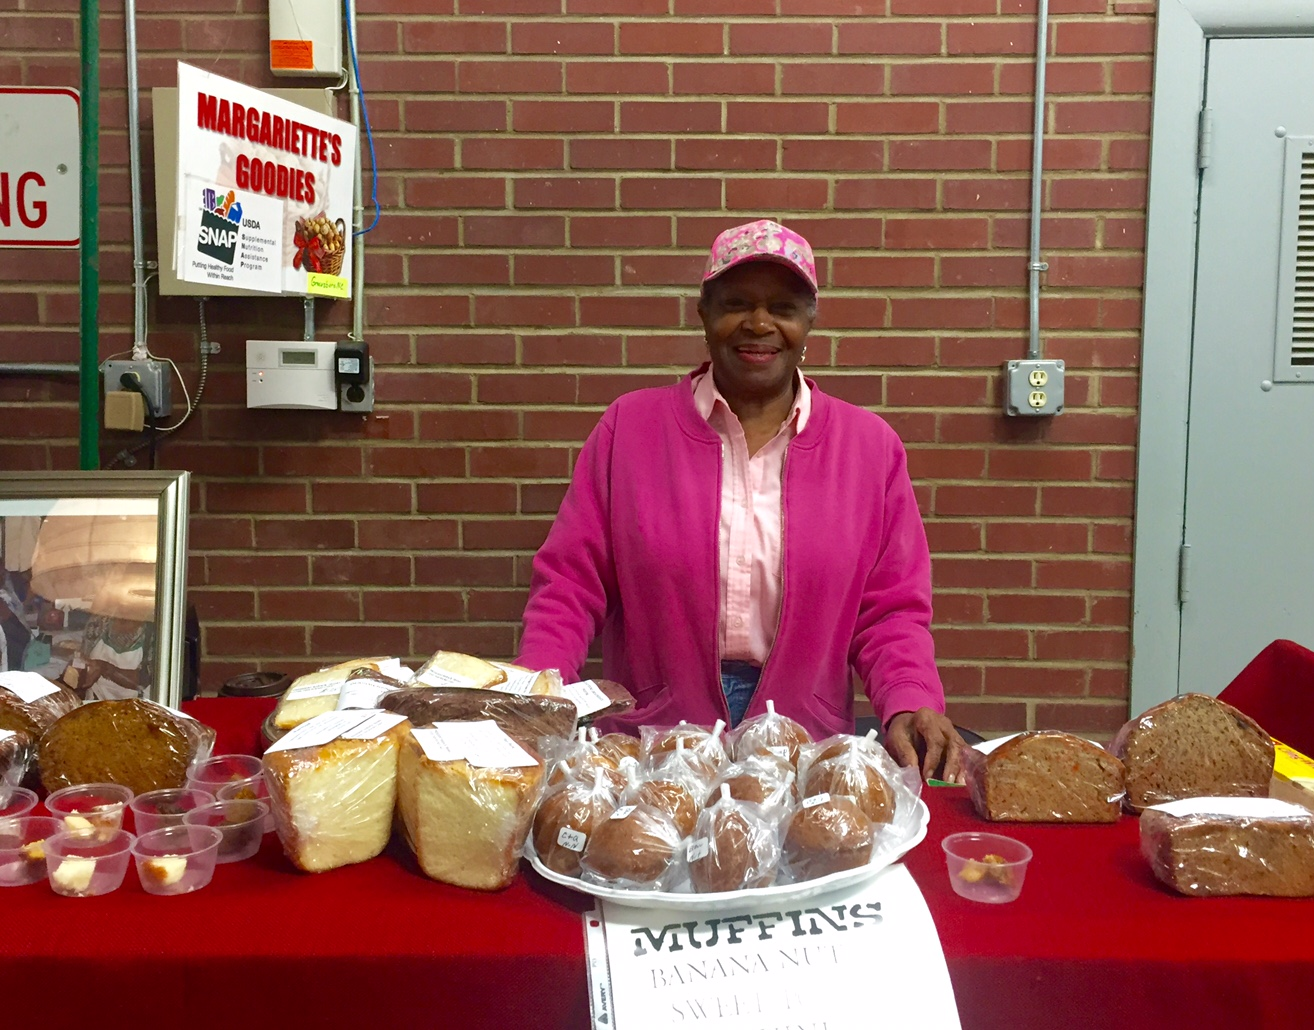 Meet Your Vendor: Margariette Graves